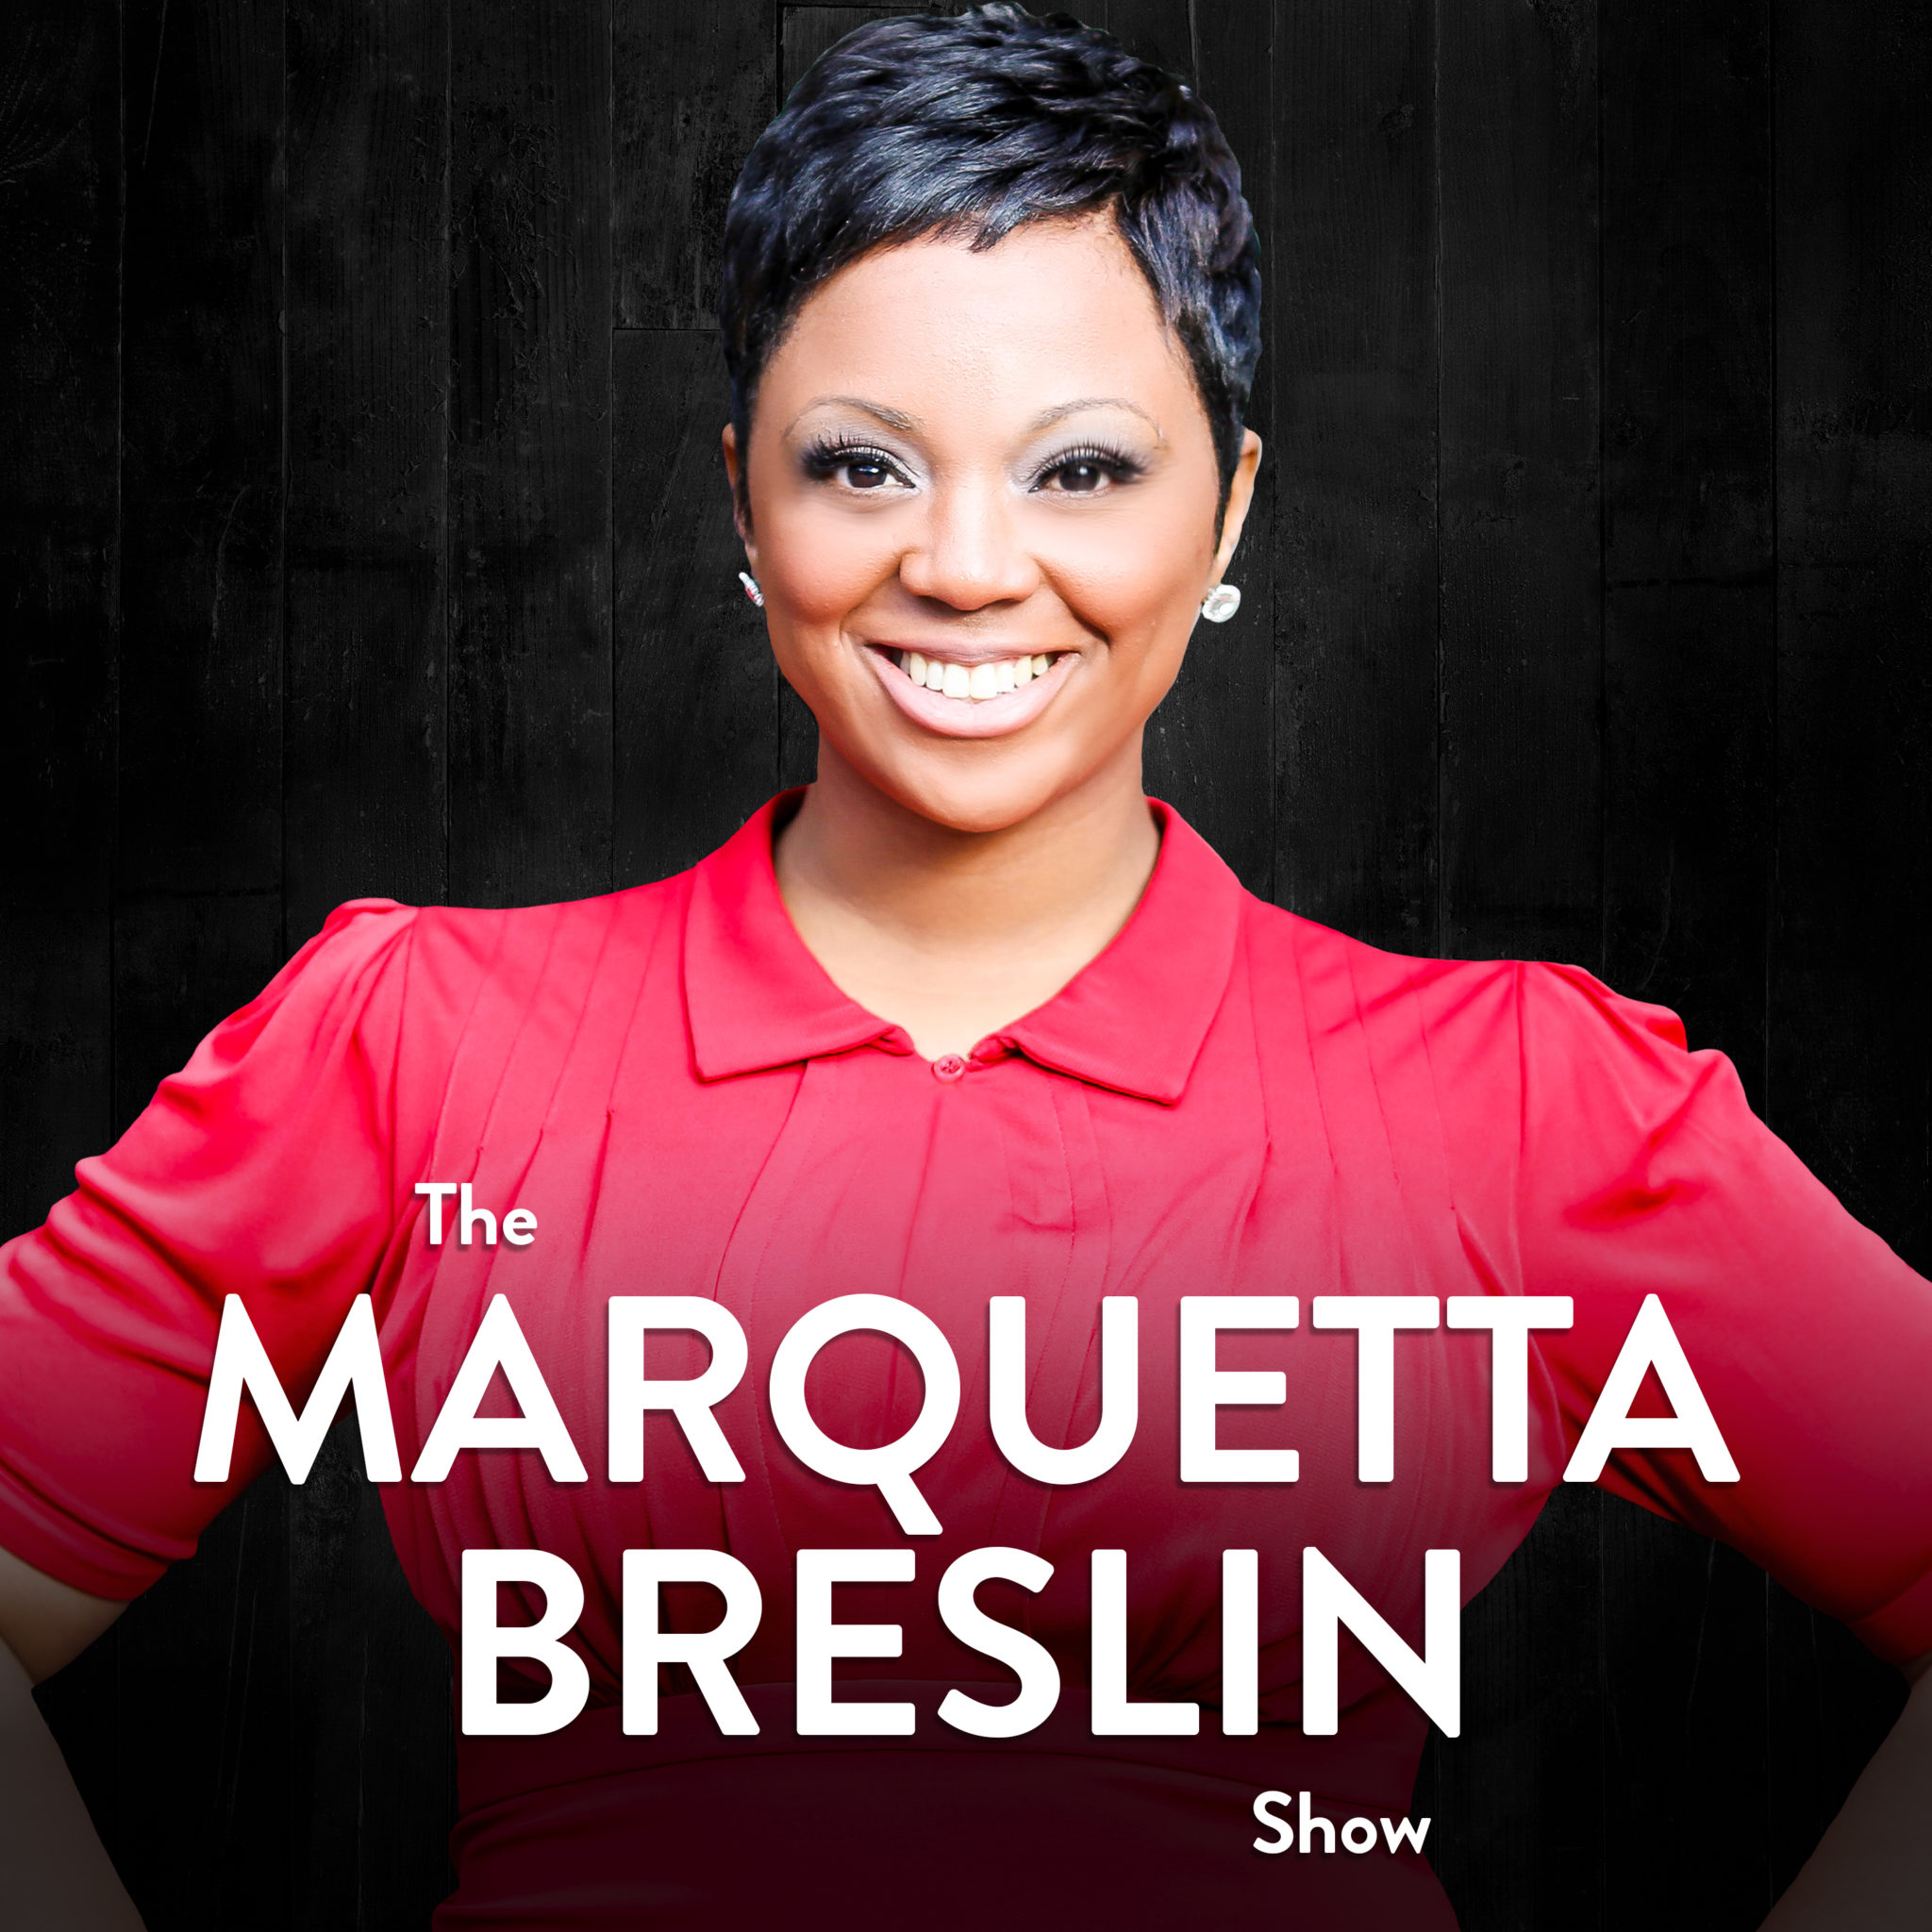 The Marquetta Breslin Show